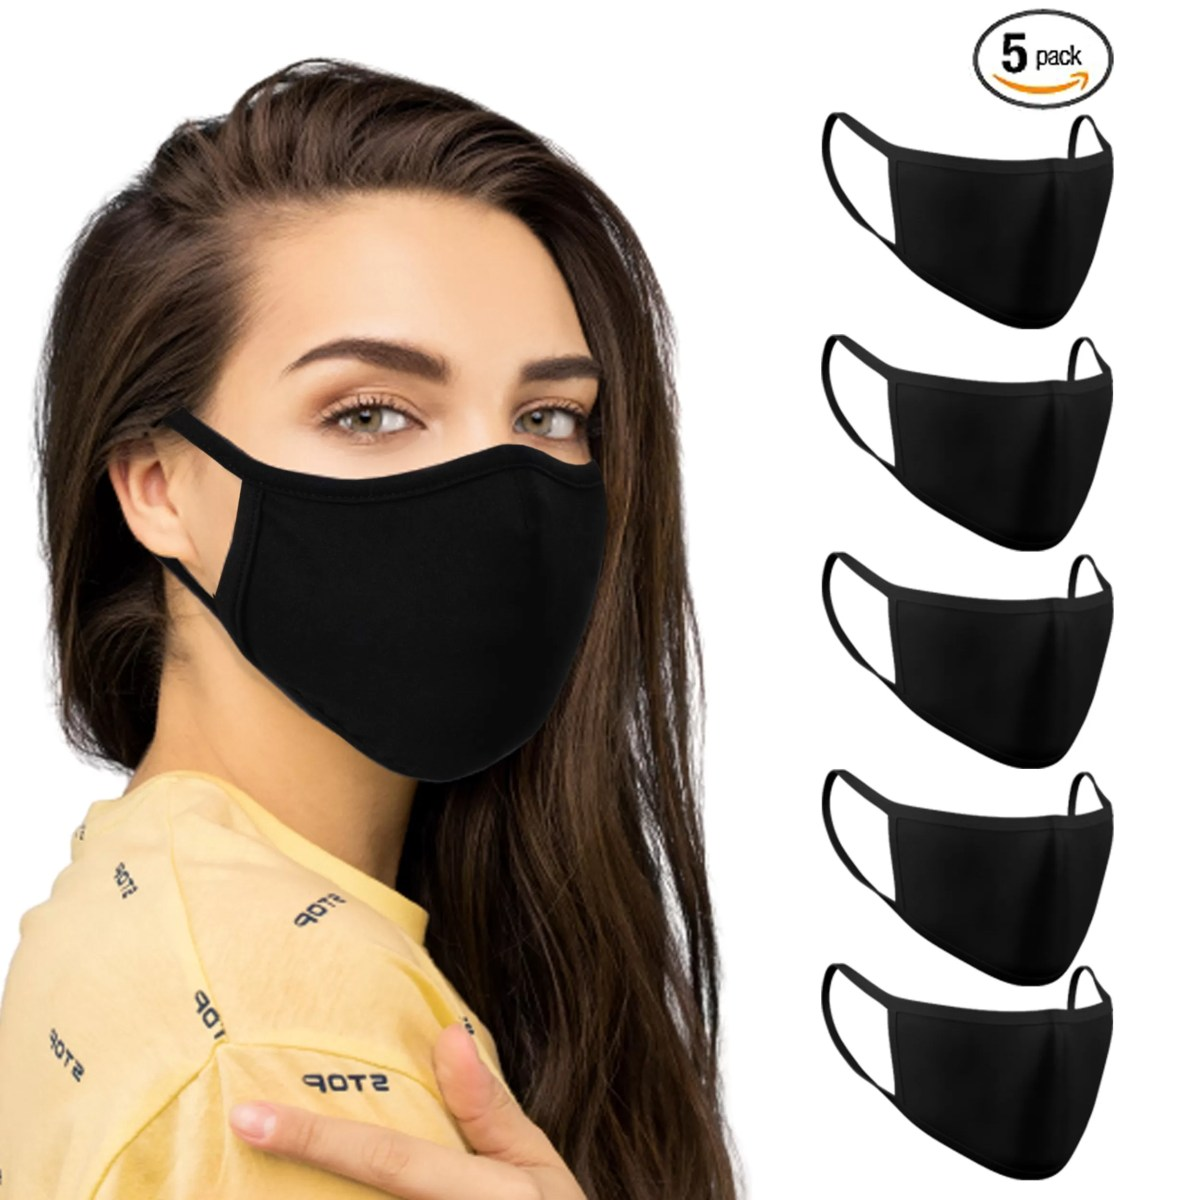 Cloth Loop Face Mask